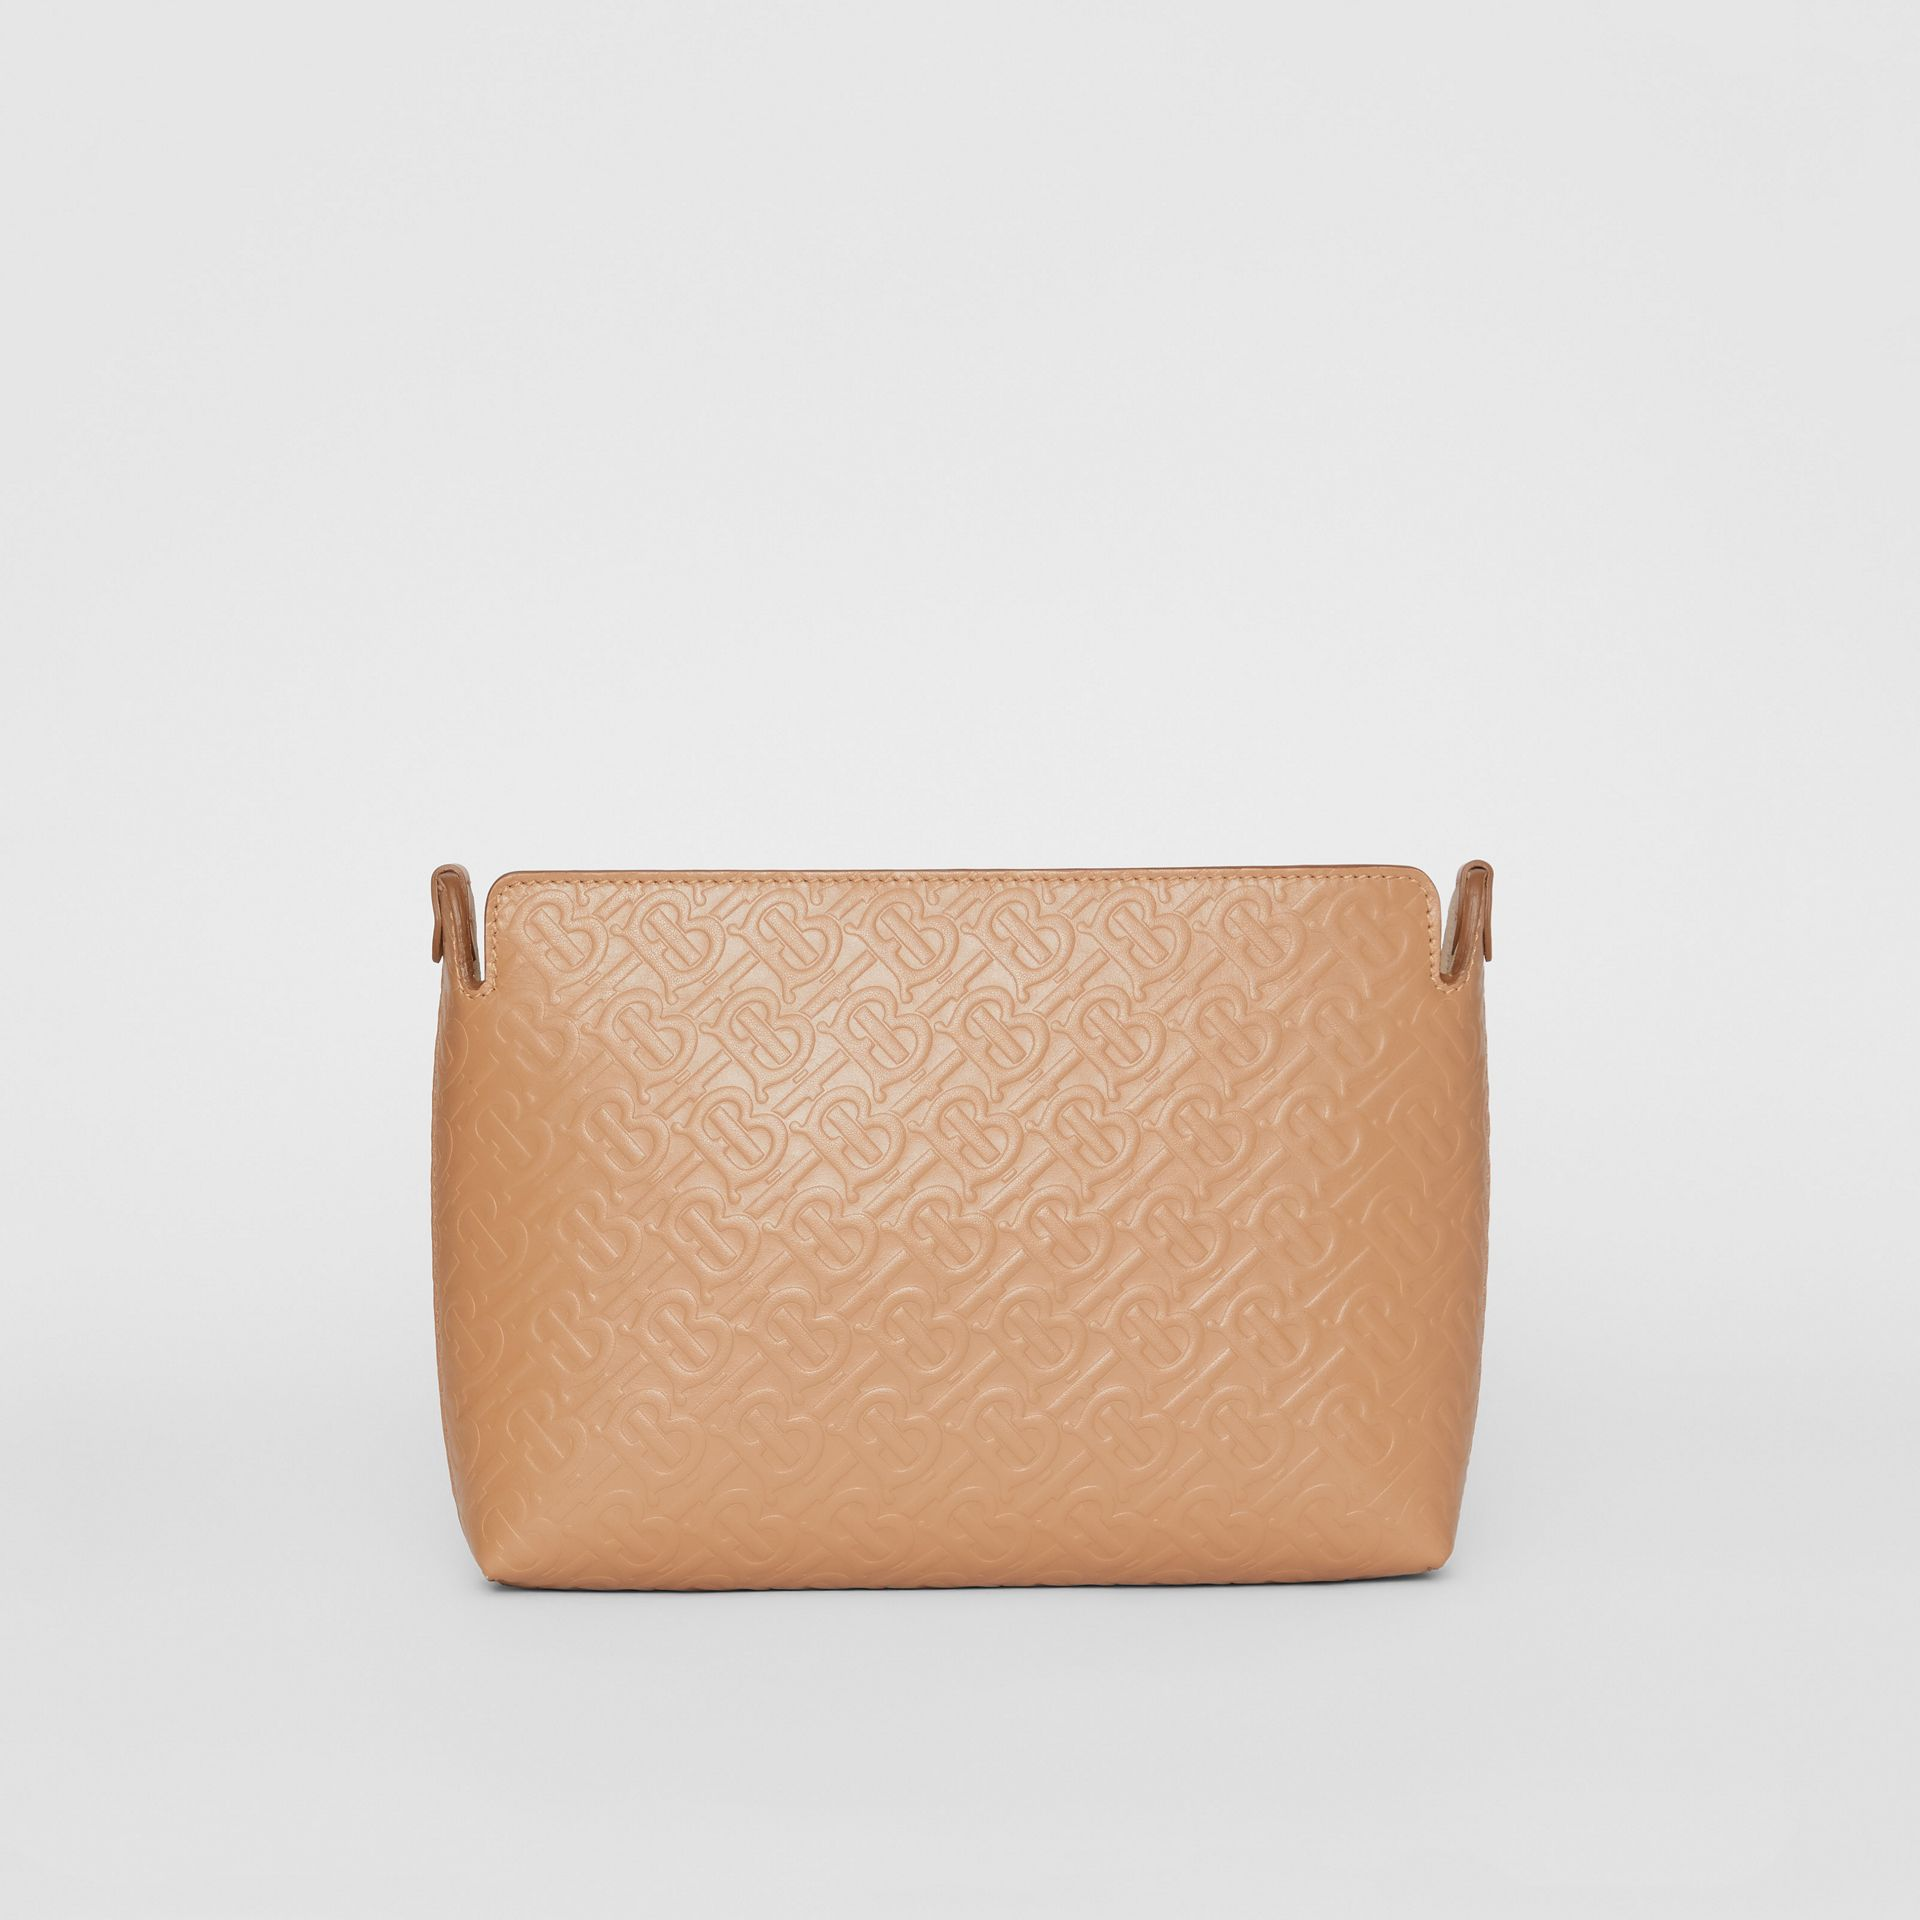 Medium Monogram Leather Clutch in Light Camel - Women | Burberry - gallery image 0